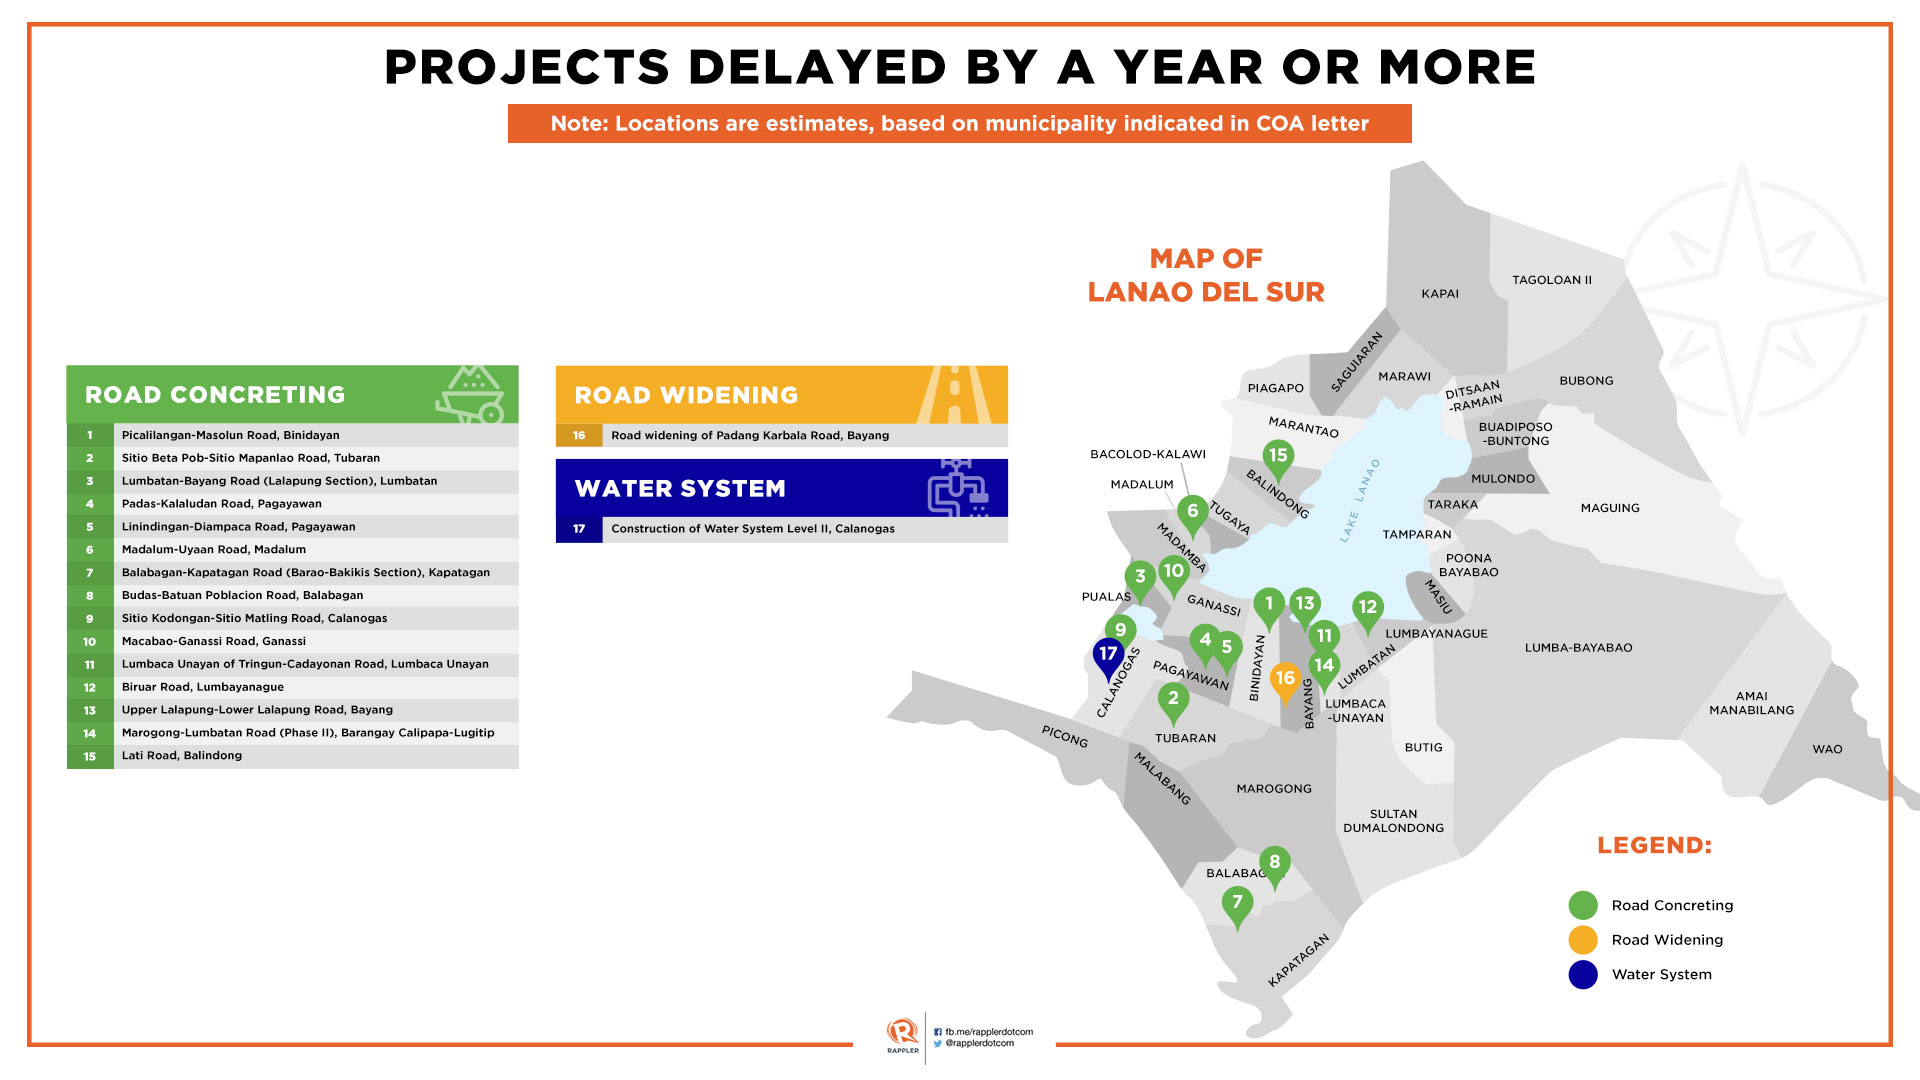 Data from March 2019 COA Management Letter for DPWH-Lanao del Sur 2nd District District Engineering Office